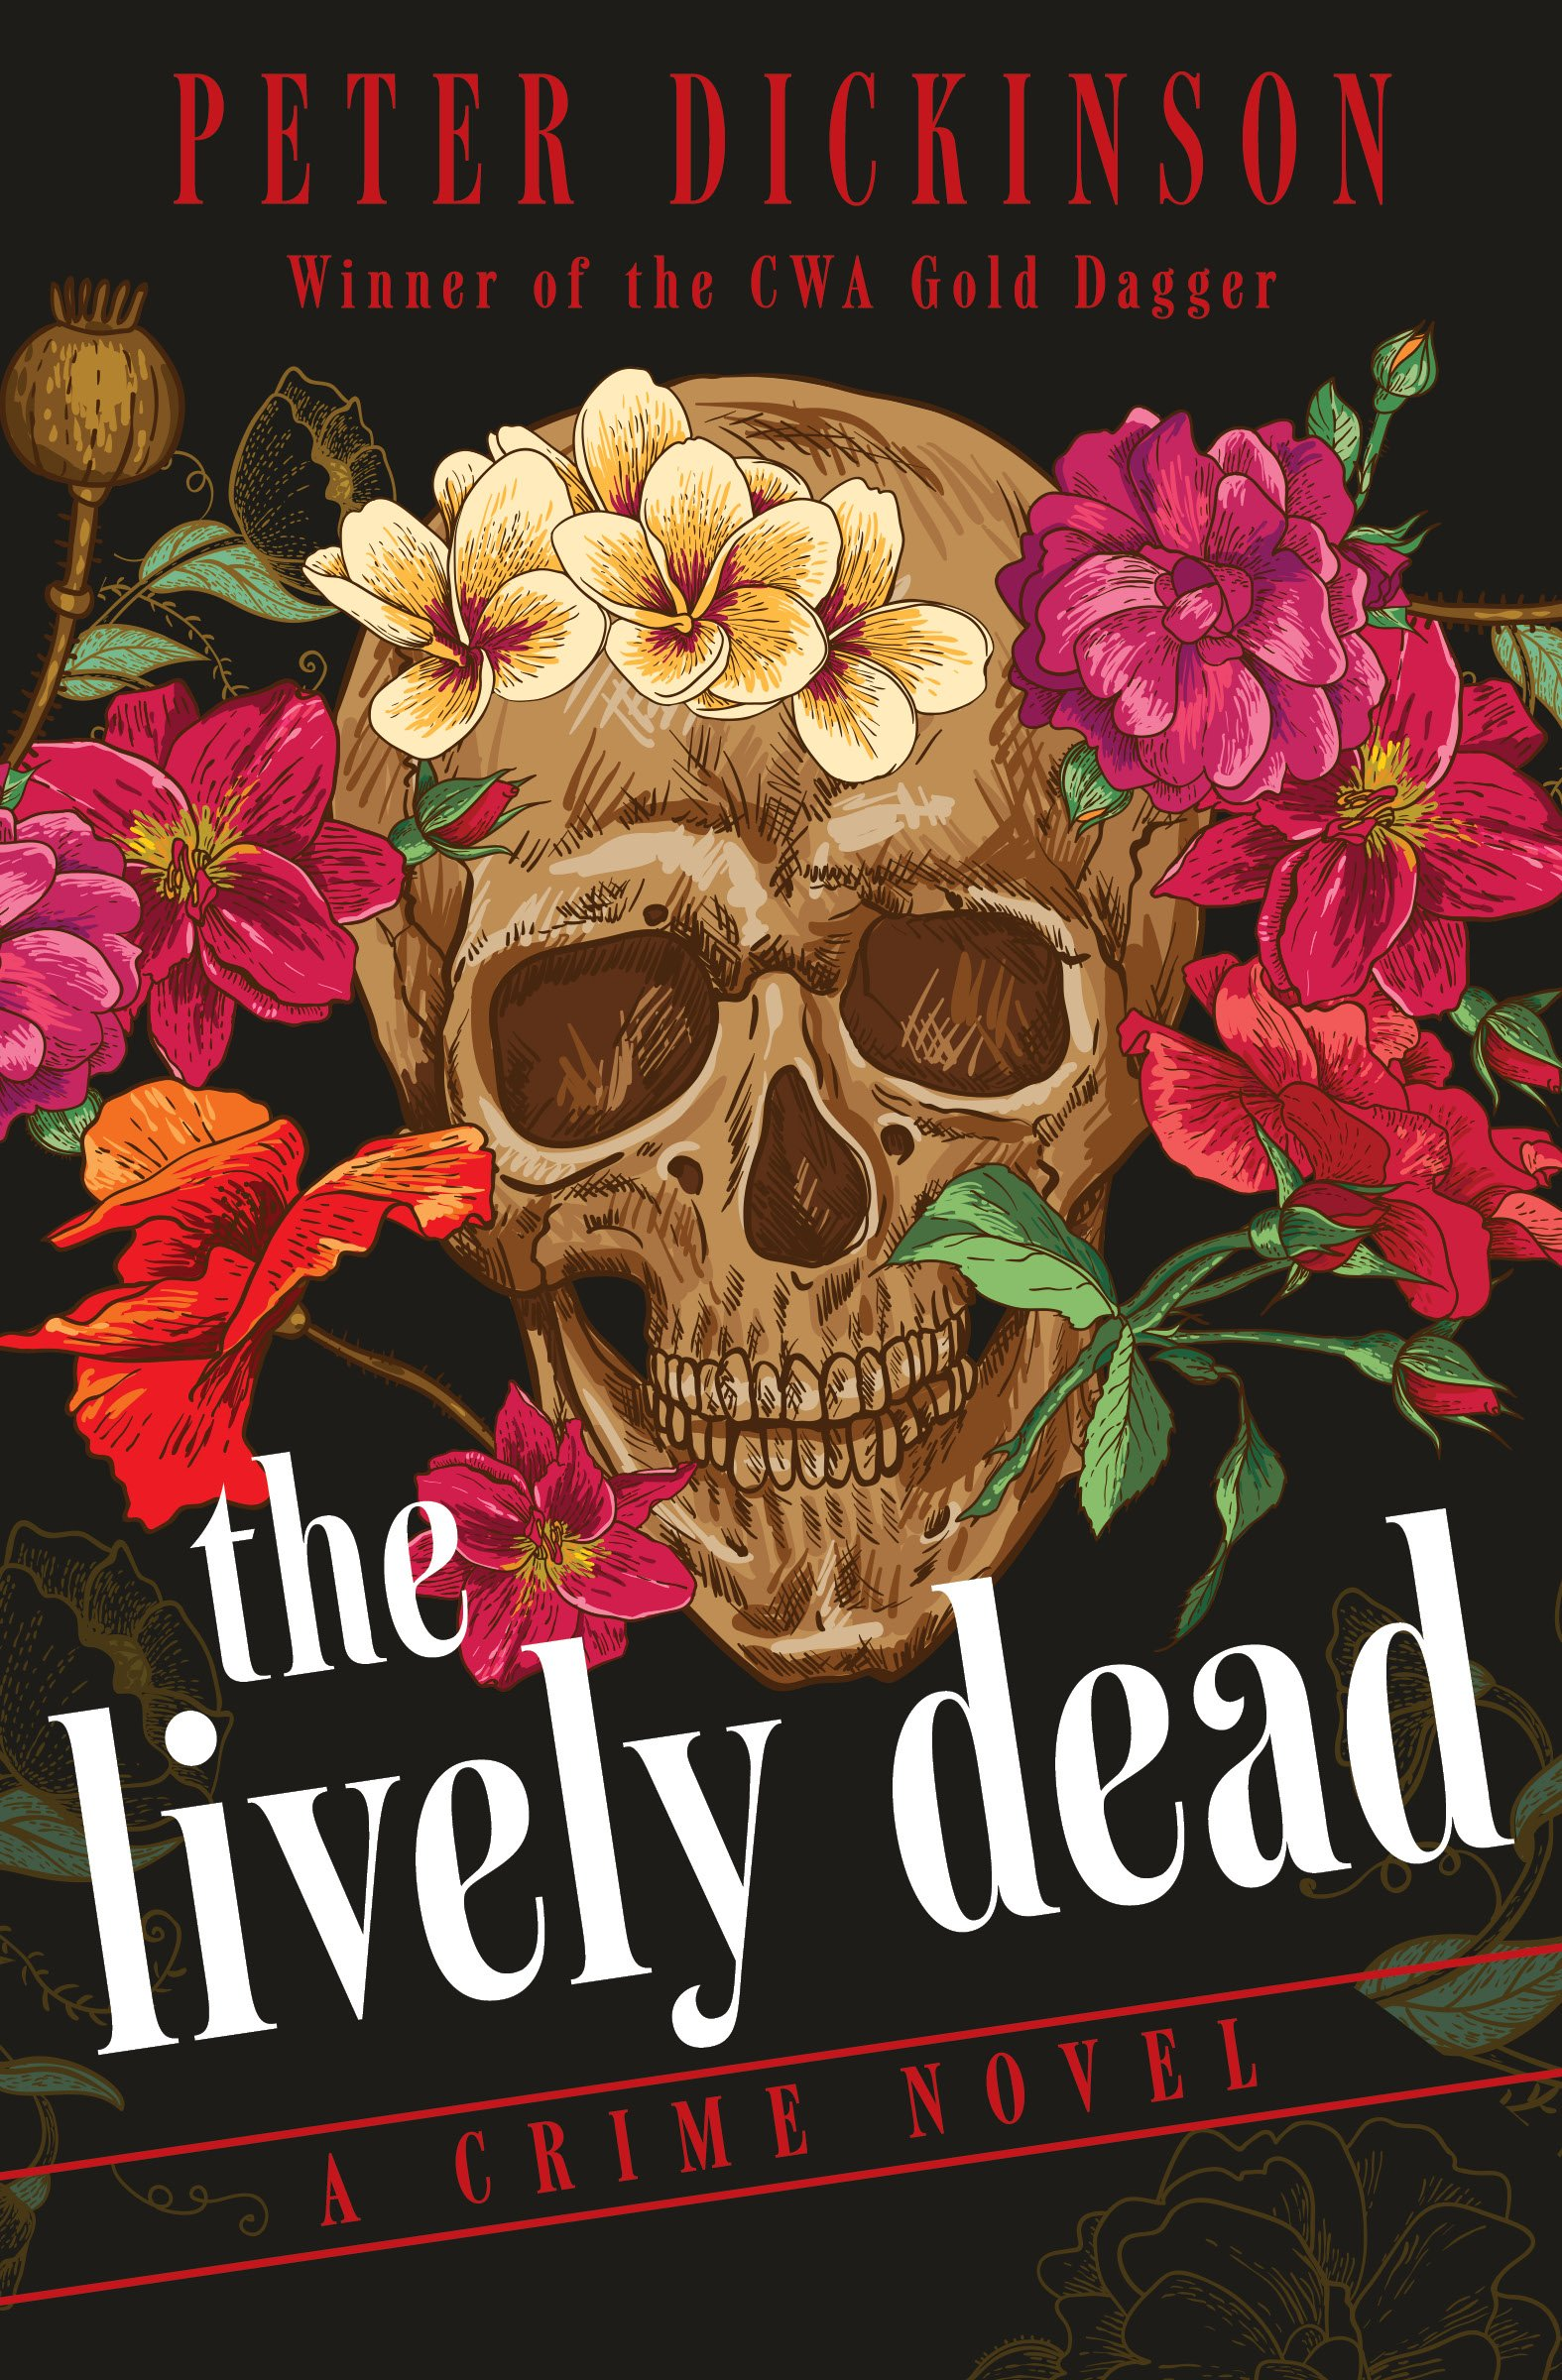 The Lively Dead: A Crime Novel: Peter Dickinson: 9781497697669: Amazon:  Books